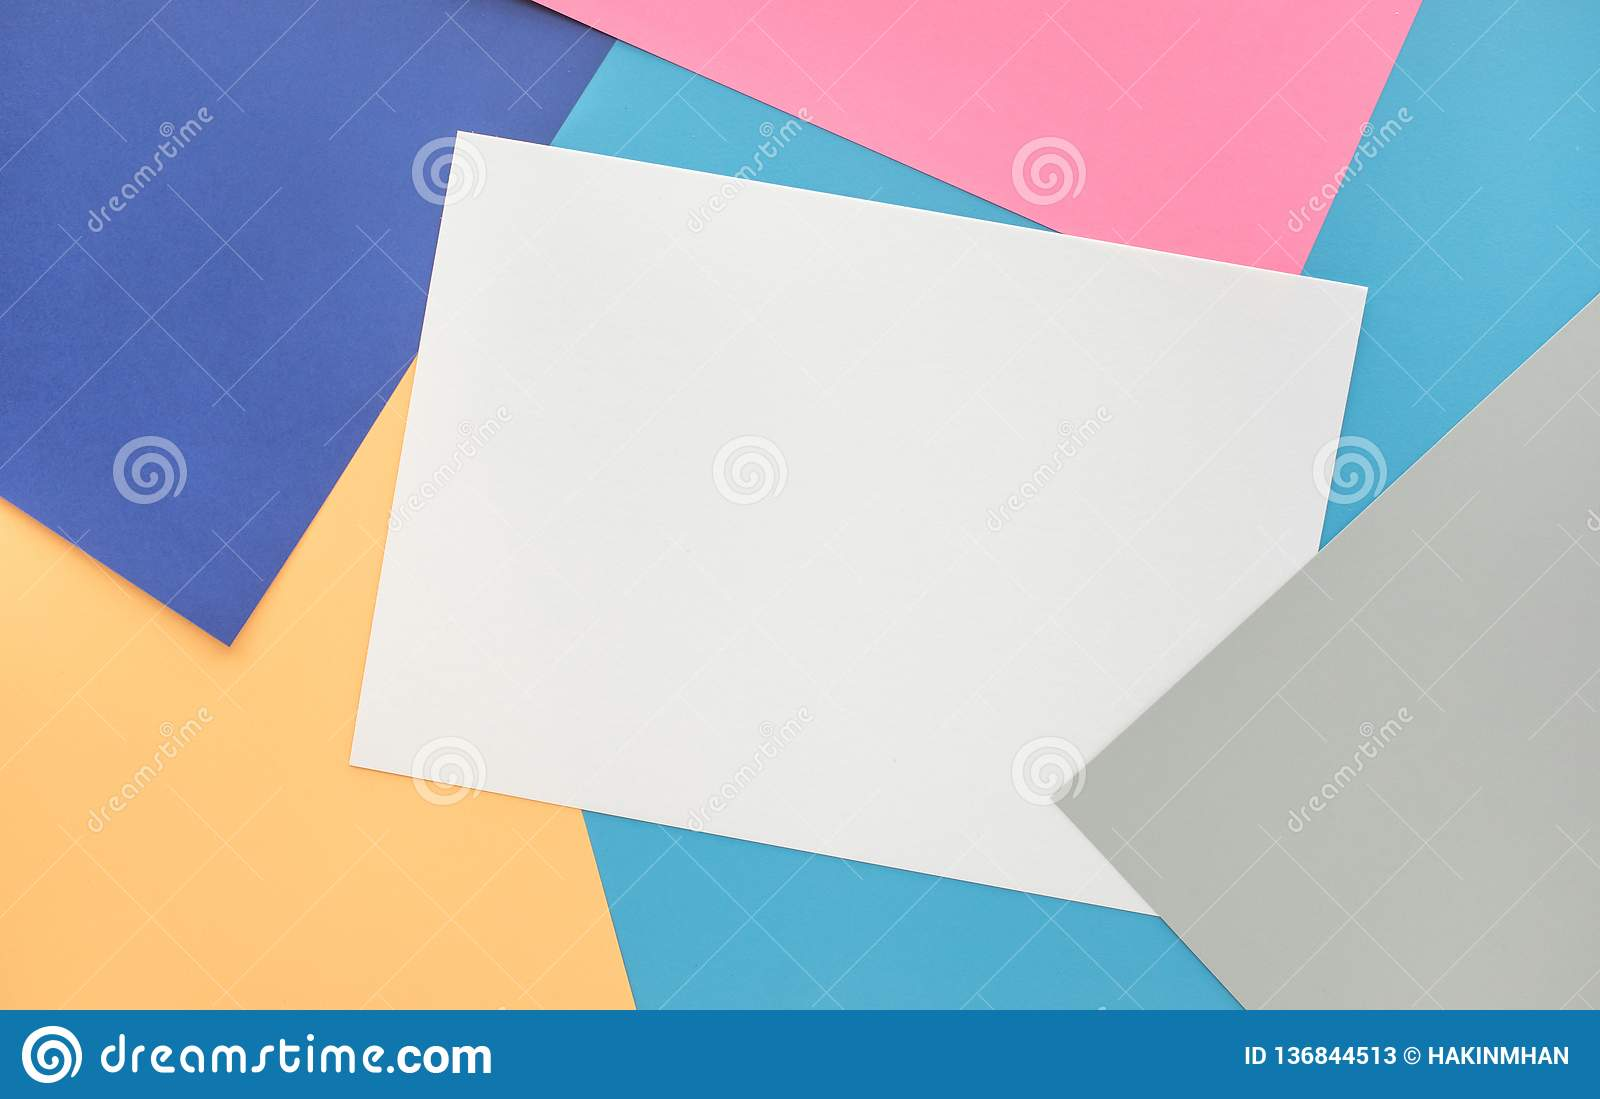 Paper pastel color background.For key visual layout